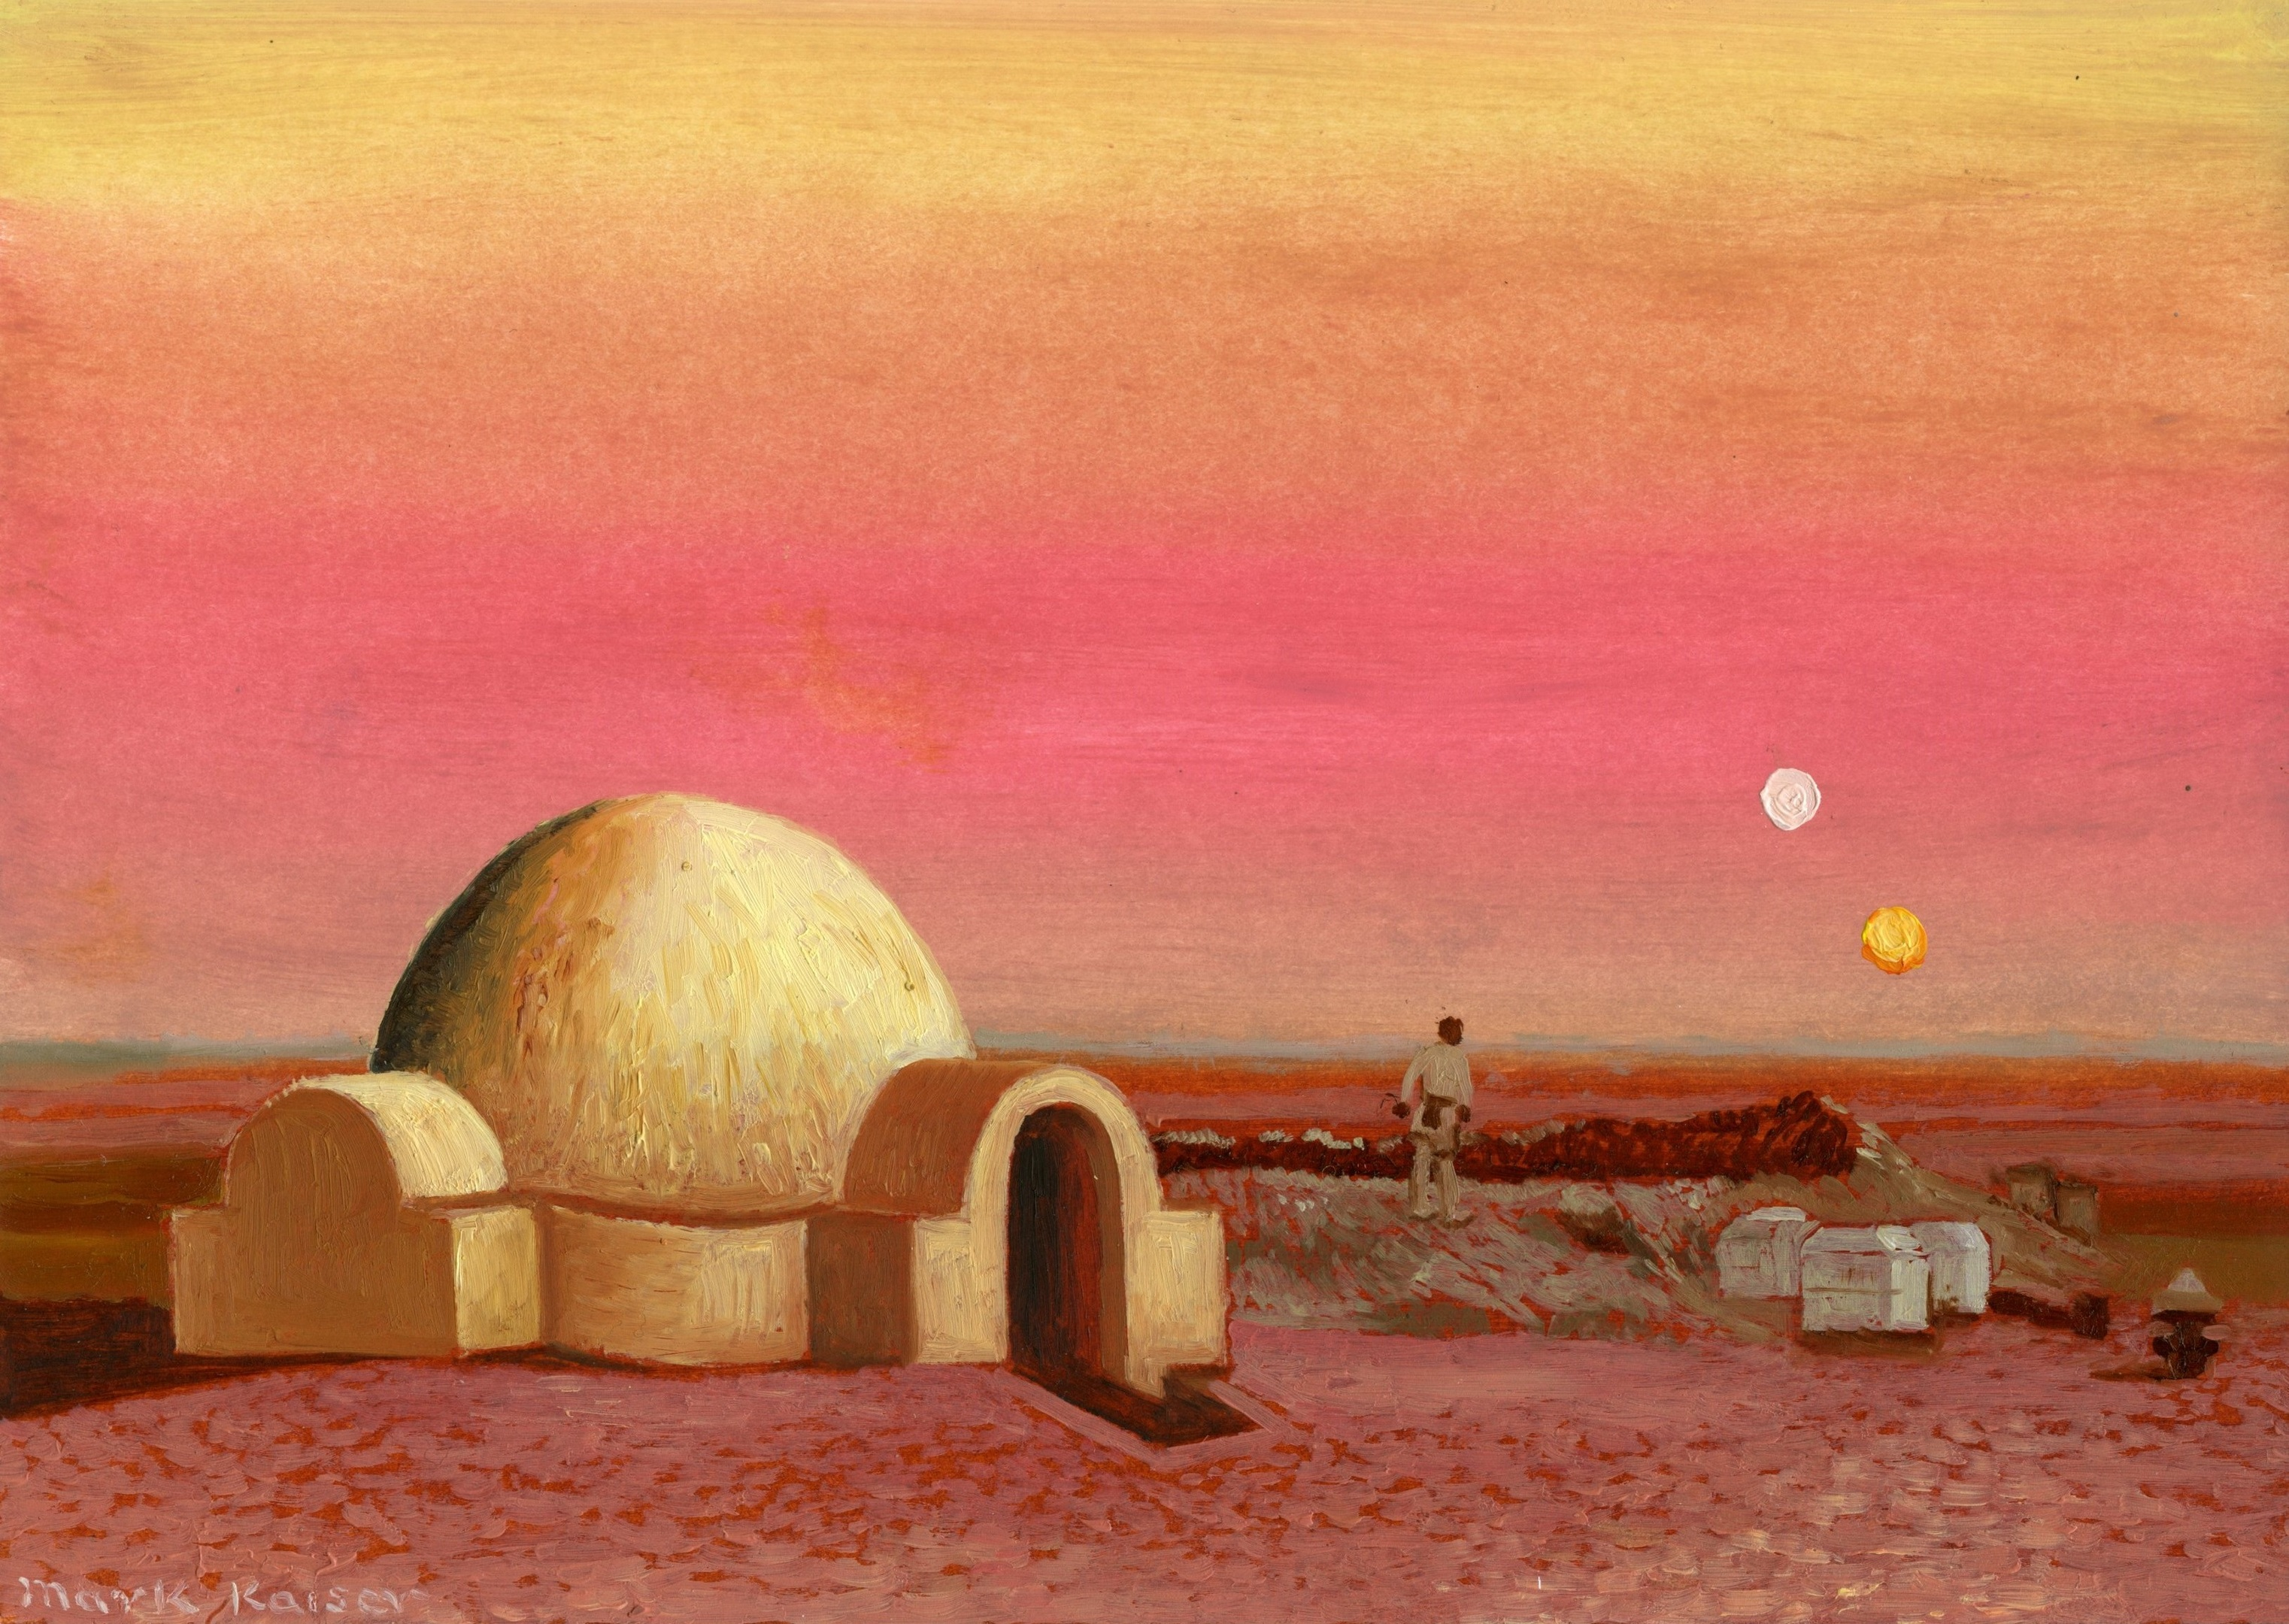 """Artist Mark Kaiser added a touch of class with his Star Wars-themed """"doodle""""."""